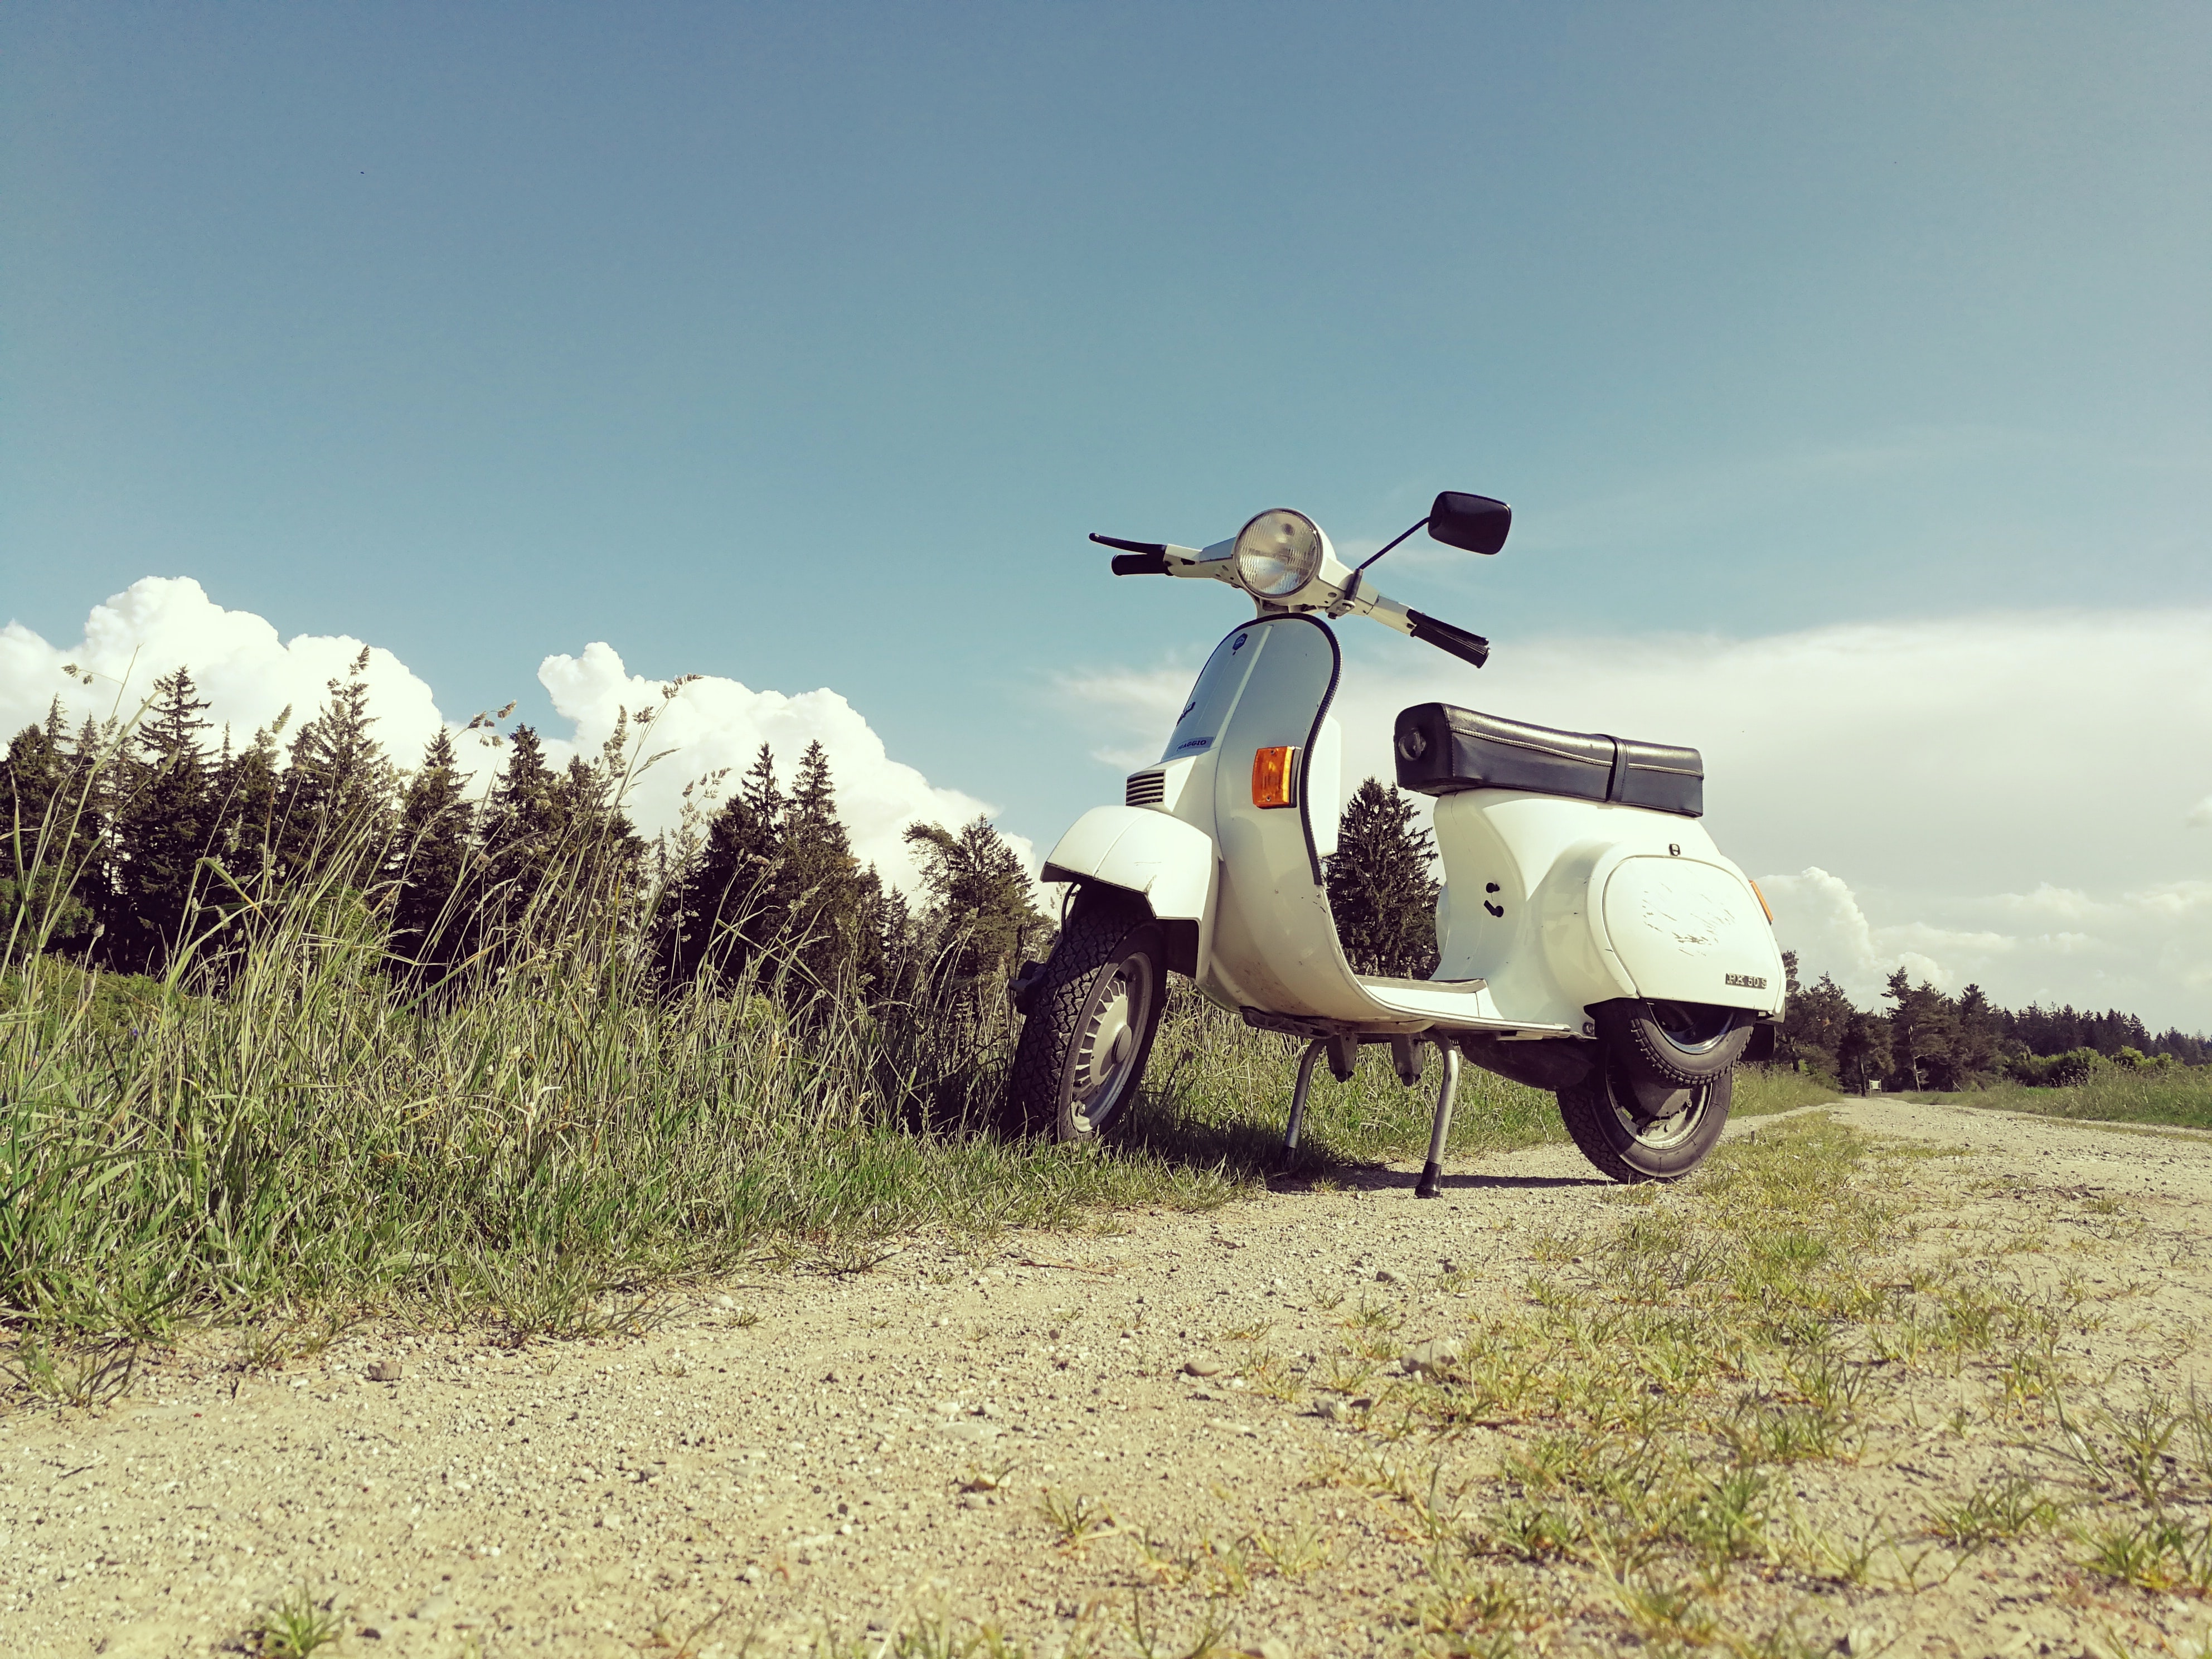 white motor scooter parked beside grass field on outdoors